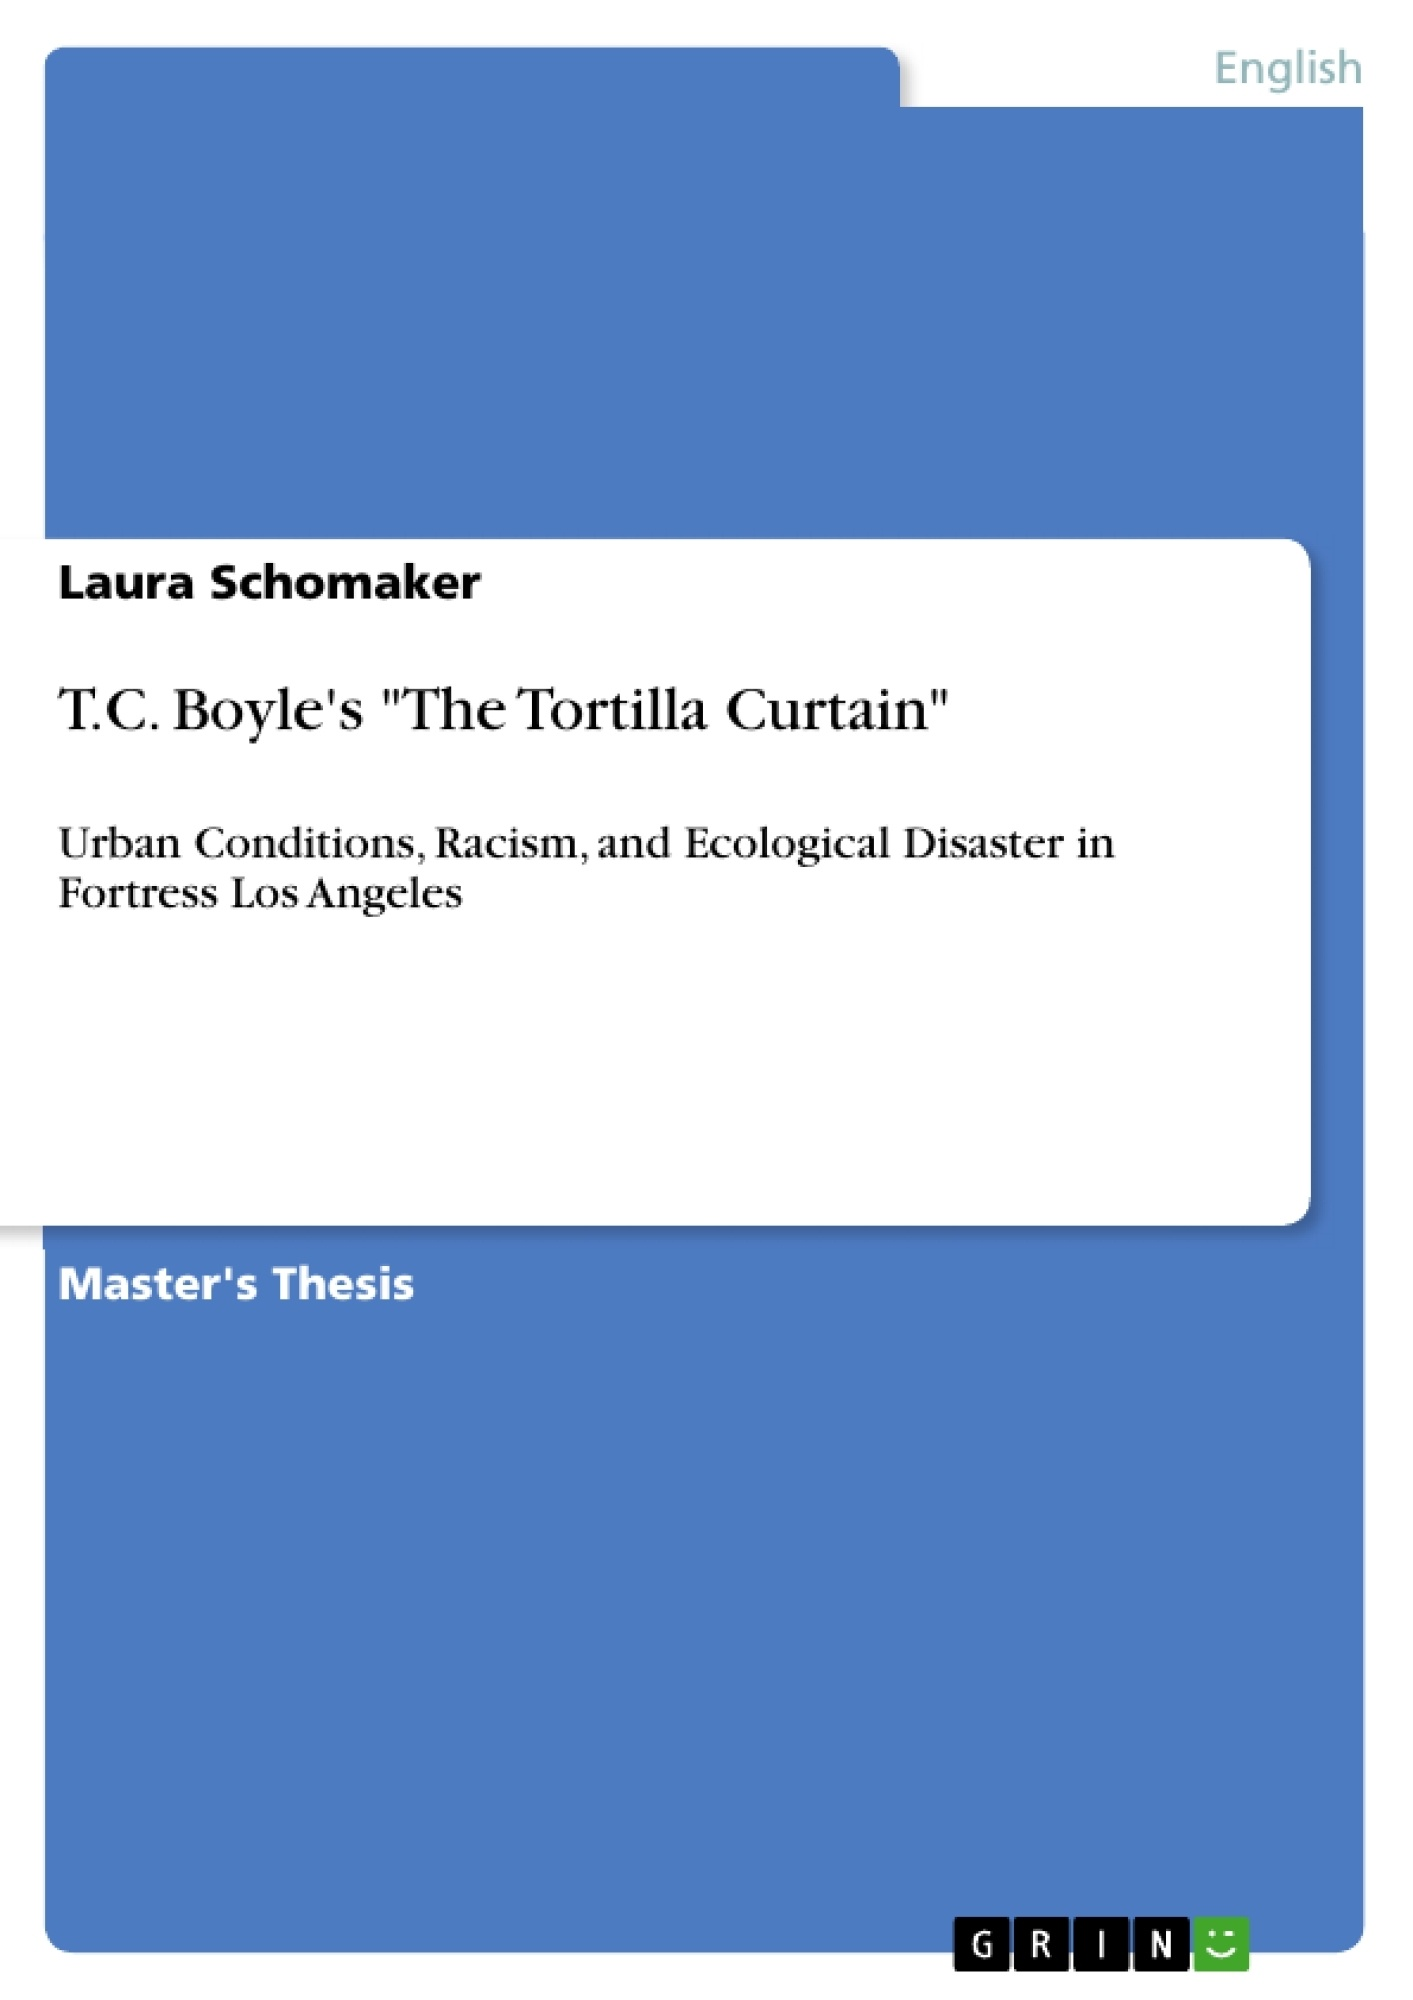 t c boyle s the tortilla curtain publish your master s thesis t c boyle s the tortilla curtain publish your master s thesis bachelor s thesis essay or term paper